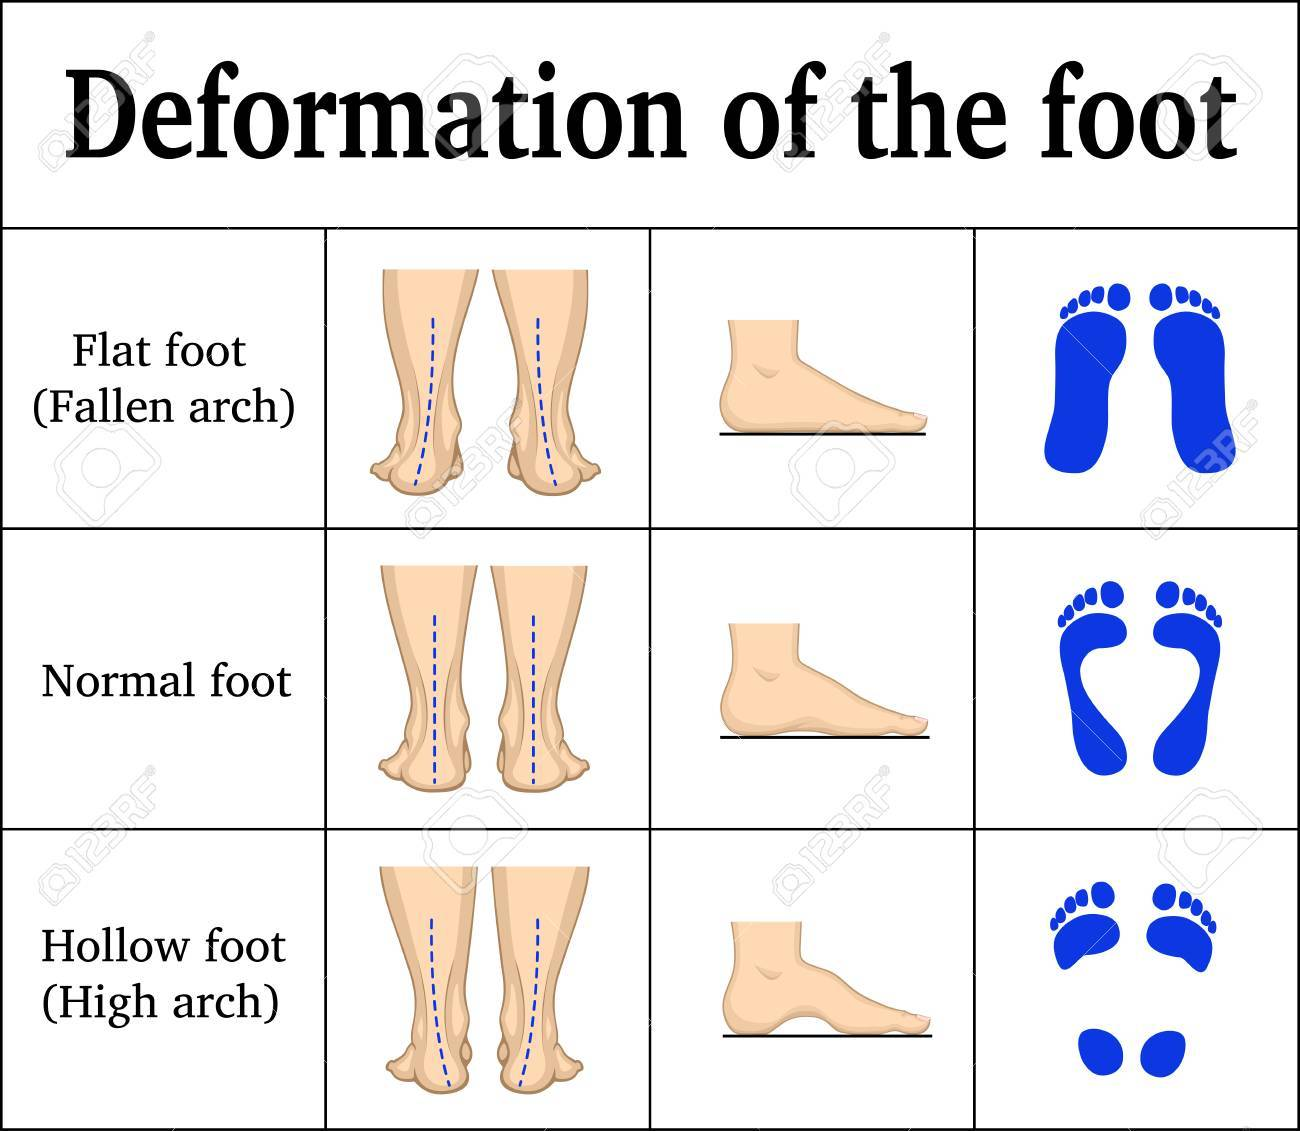 Illustration of the deformation of the foot. - 88937275